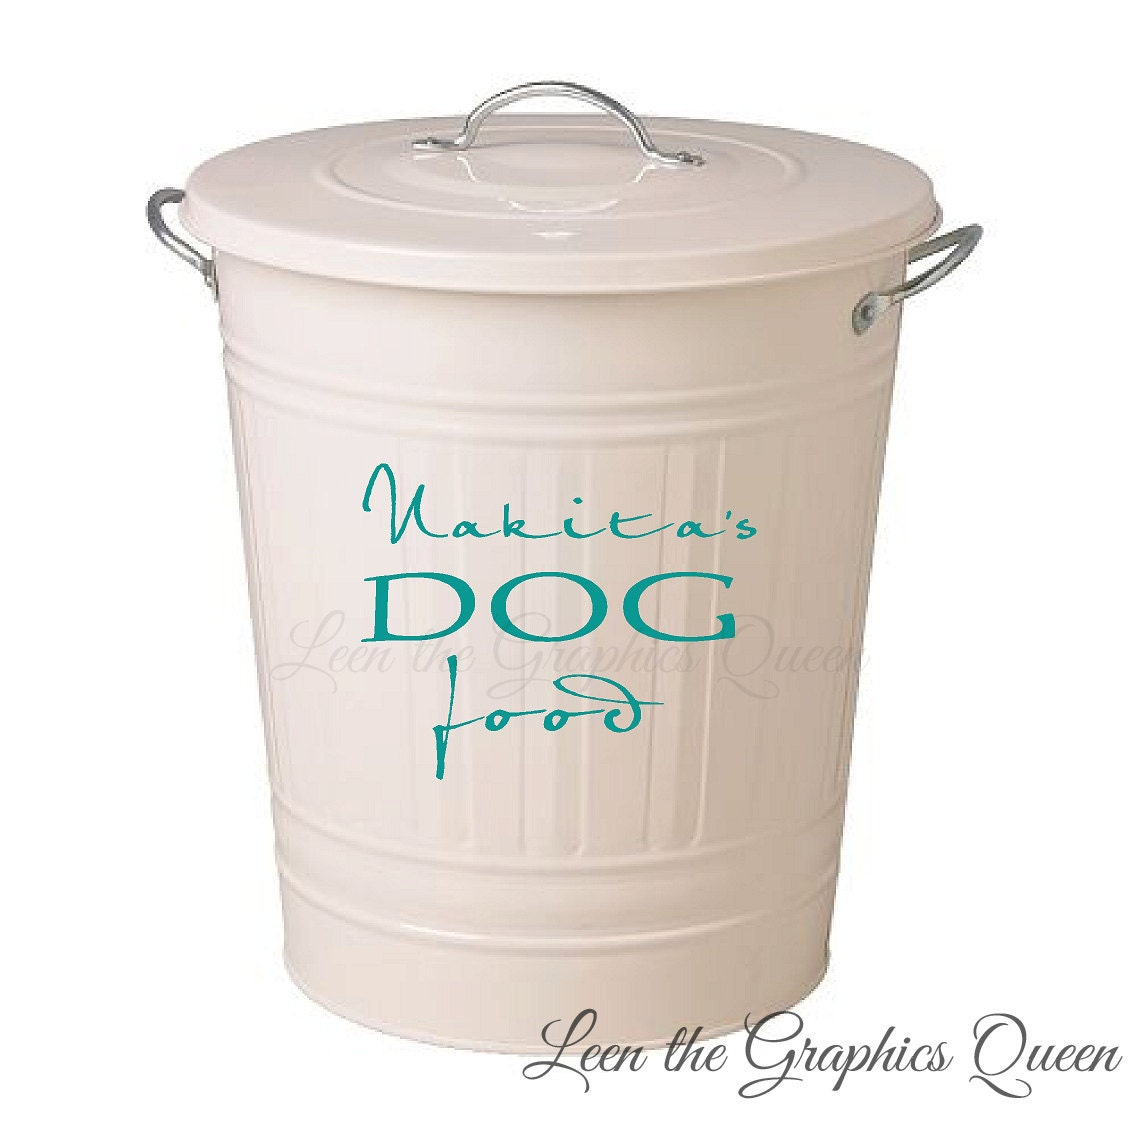 customized dog food storage container decal with name. Black Bedroom Furniture Sets. Home Design Ideas